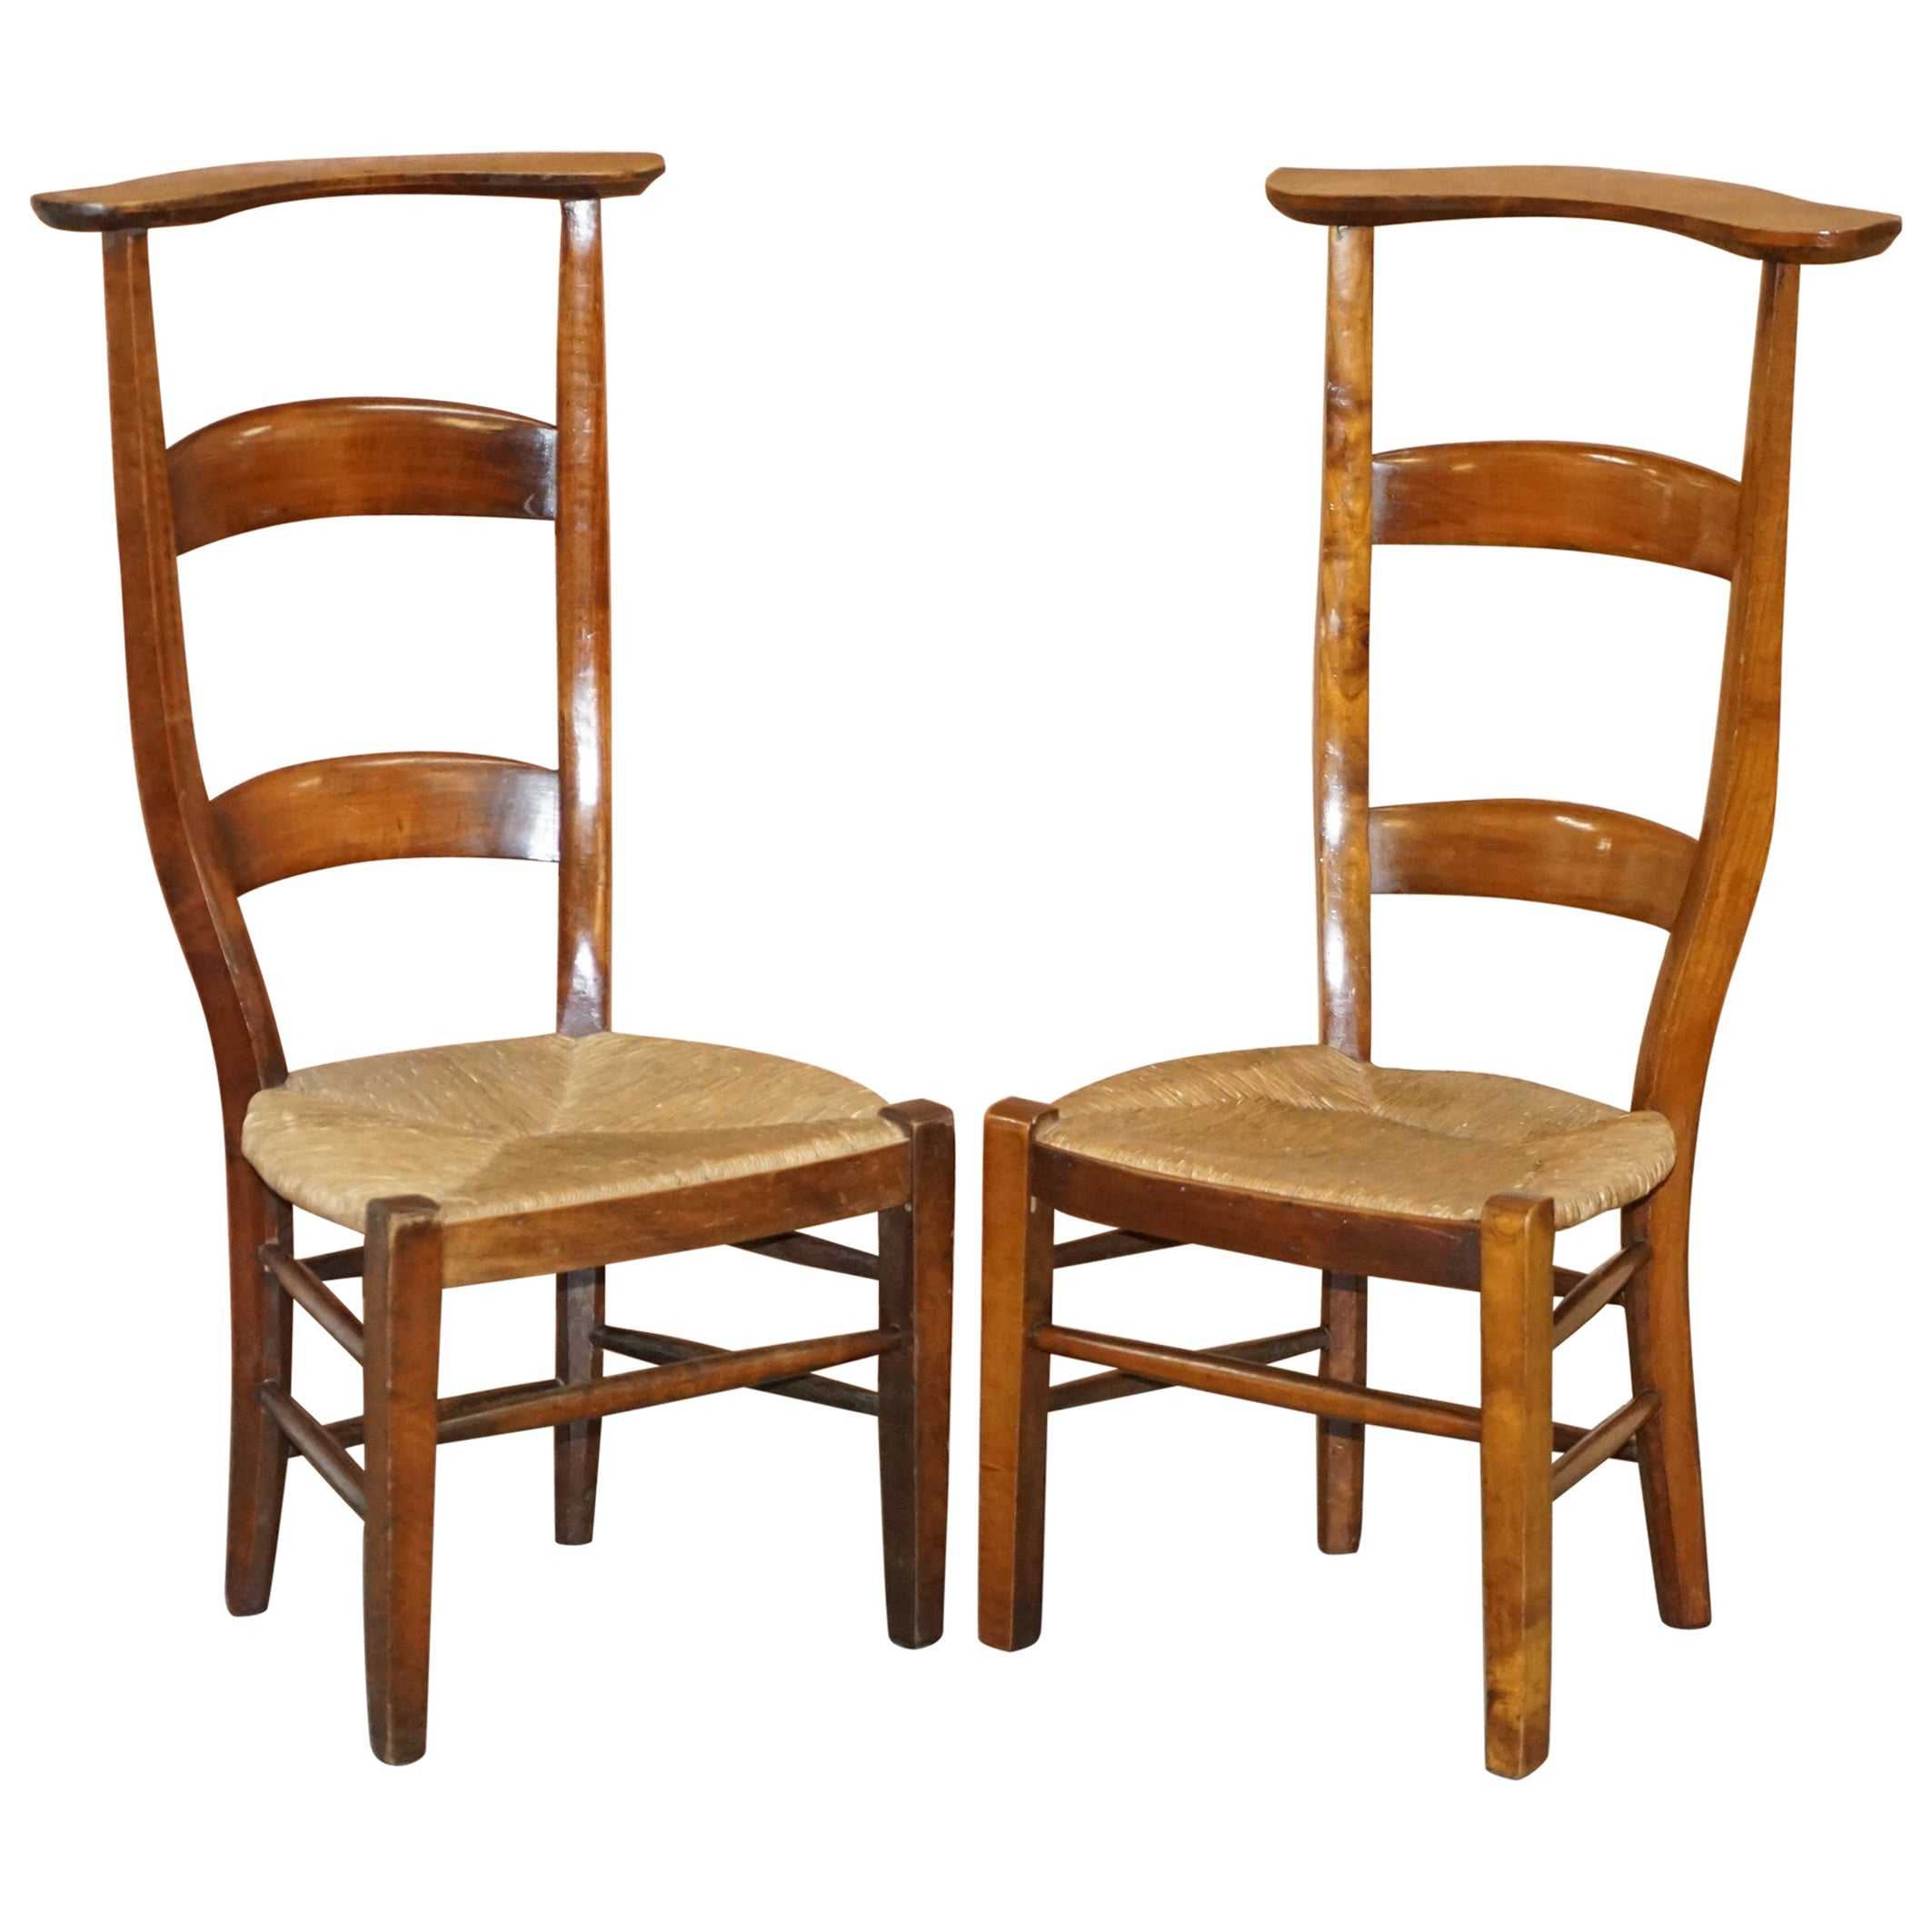 Pair of circa 1840 Hand Carved Prie Dieu High Back Prayer Chairs Original Bases